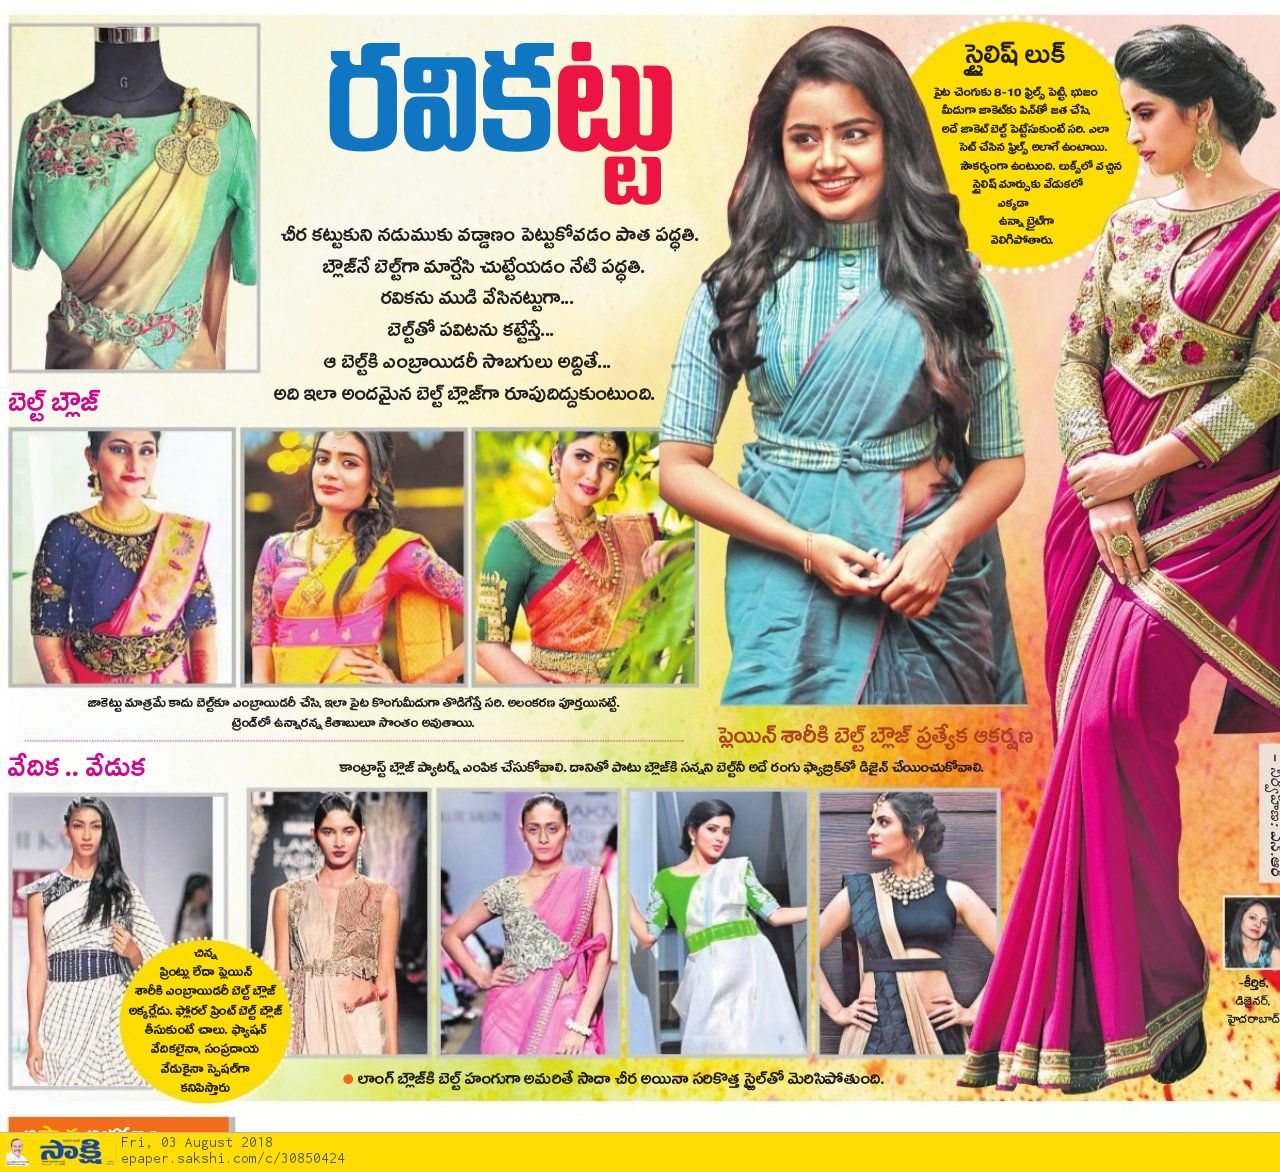 Article On Belt Blouse Instituto Design Innovation Hyderabad Himayathnagar